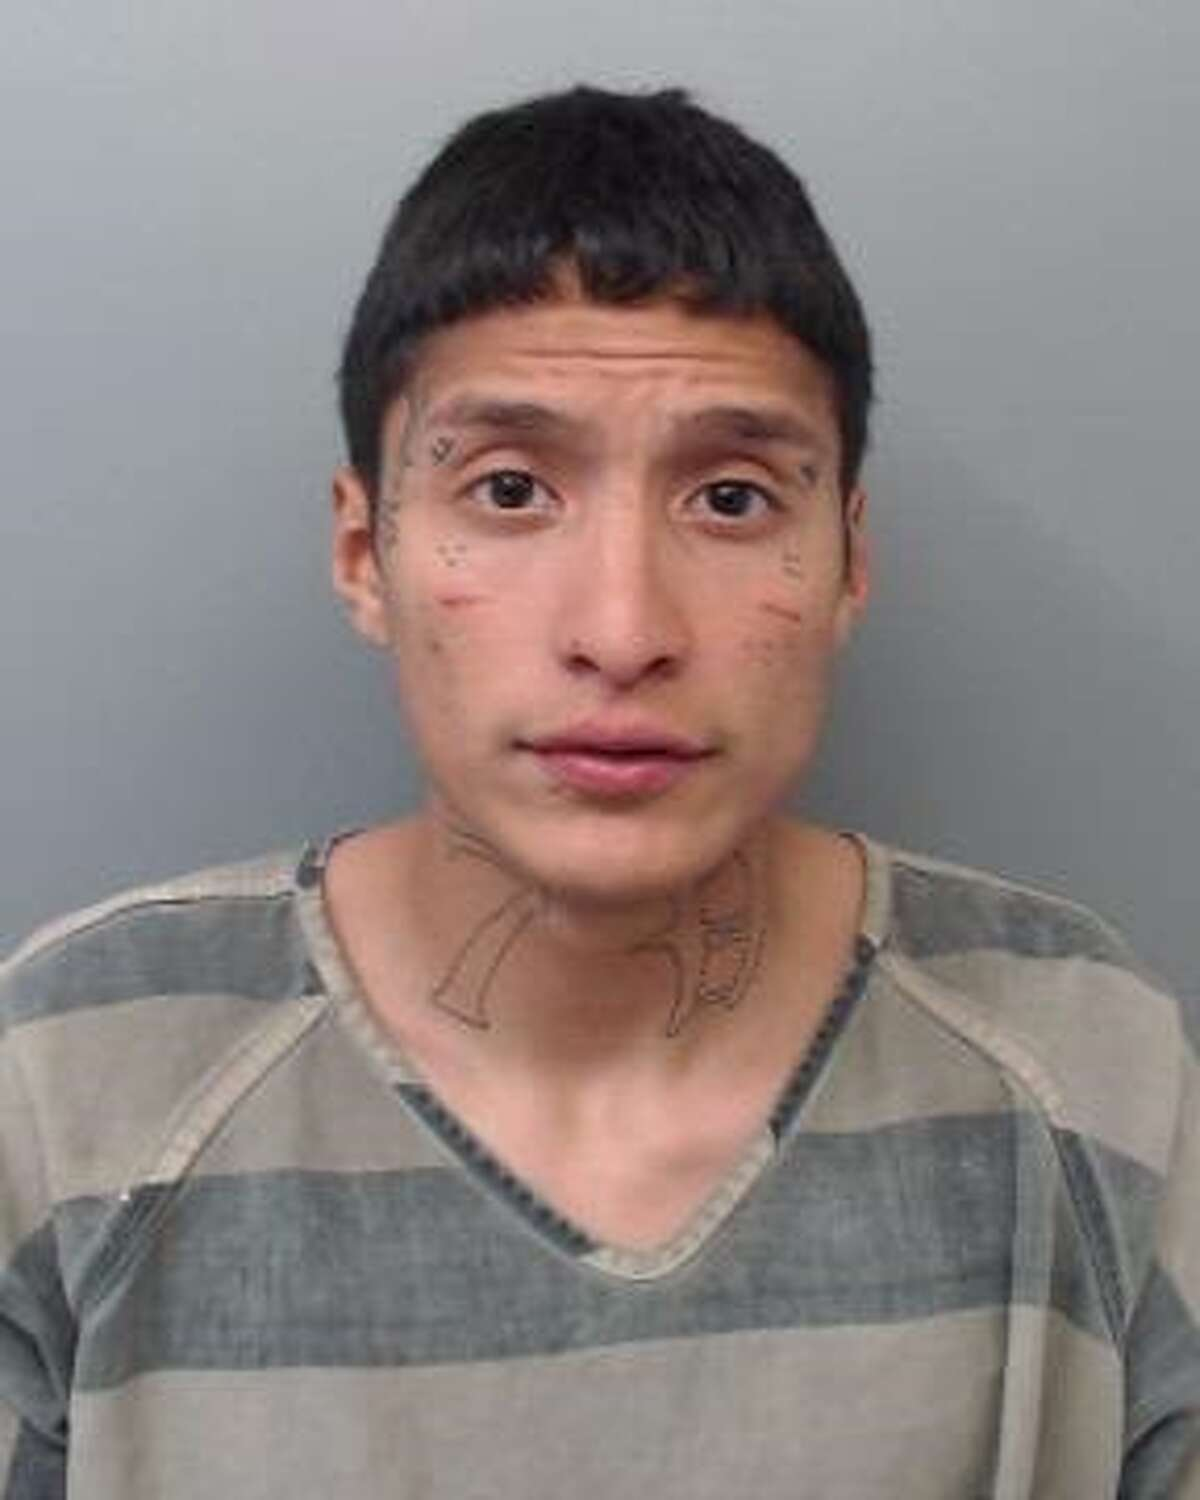 Jesus Efrain Colindres, 19, was charged with aggravated robbery and engaging in organized criminal activity.